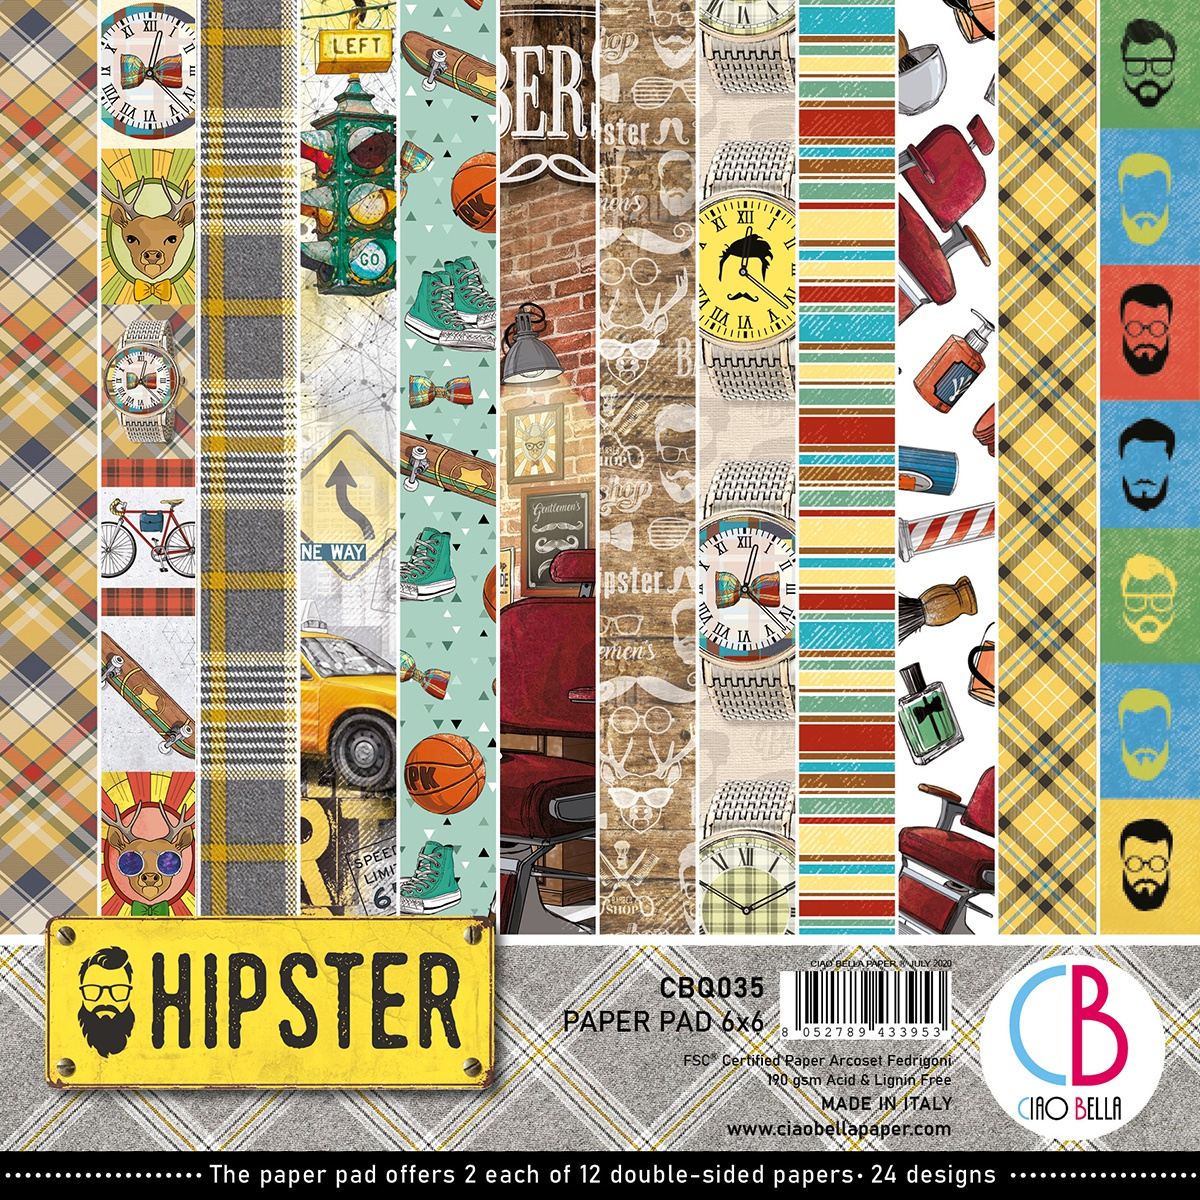 Ciao Bella Double-Sided Paper Pack 90lb 6X6 24/Pkg-Hipster, 12 Designs/2 Each